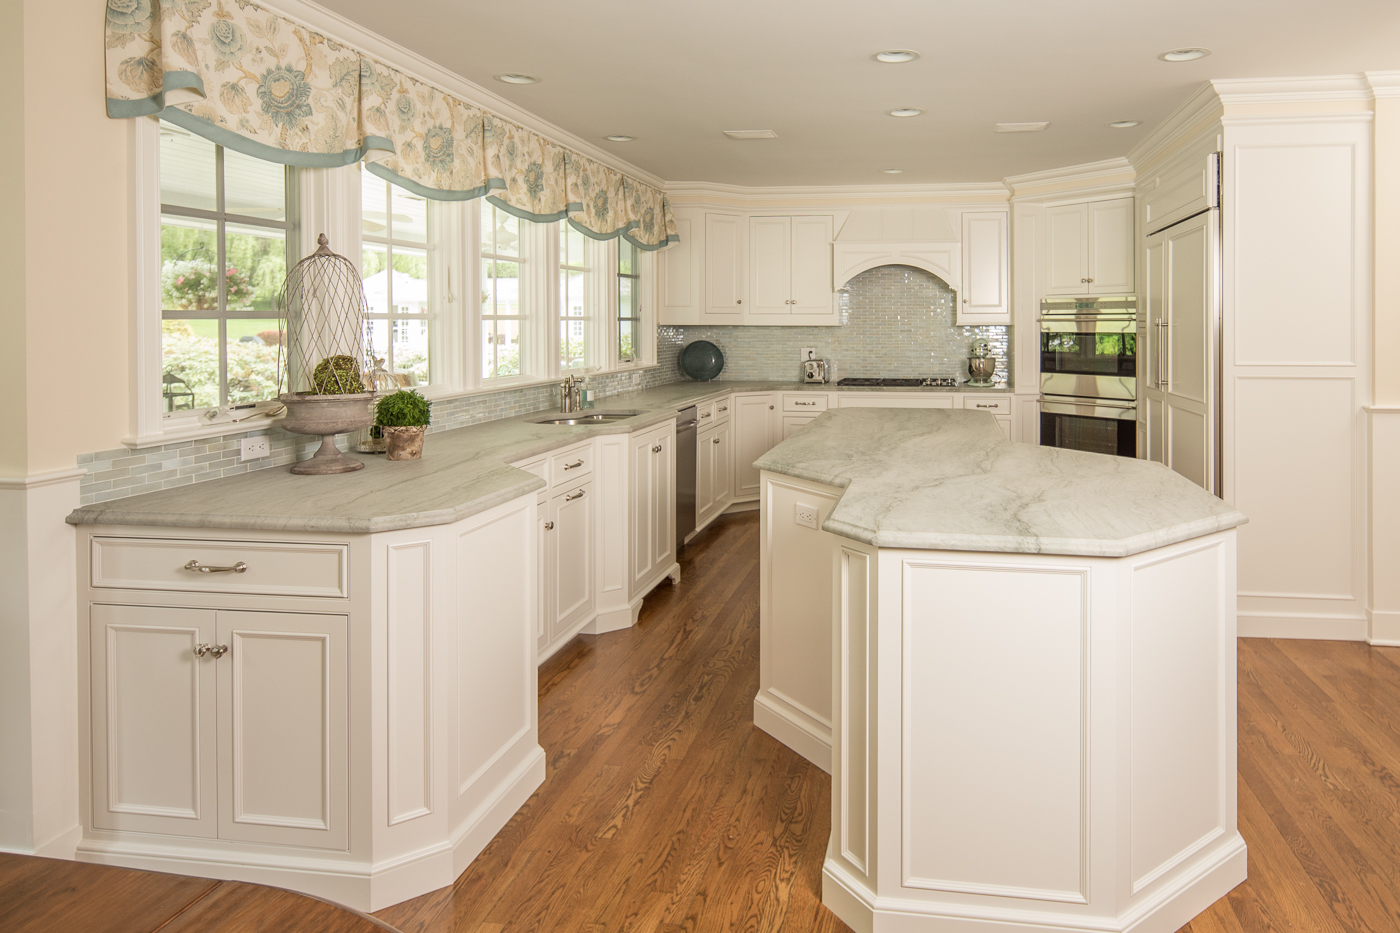 Kitchen Designers Ct Unique Ackley Cabinet Llc Decorating Design